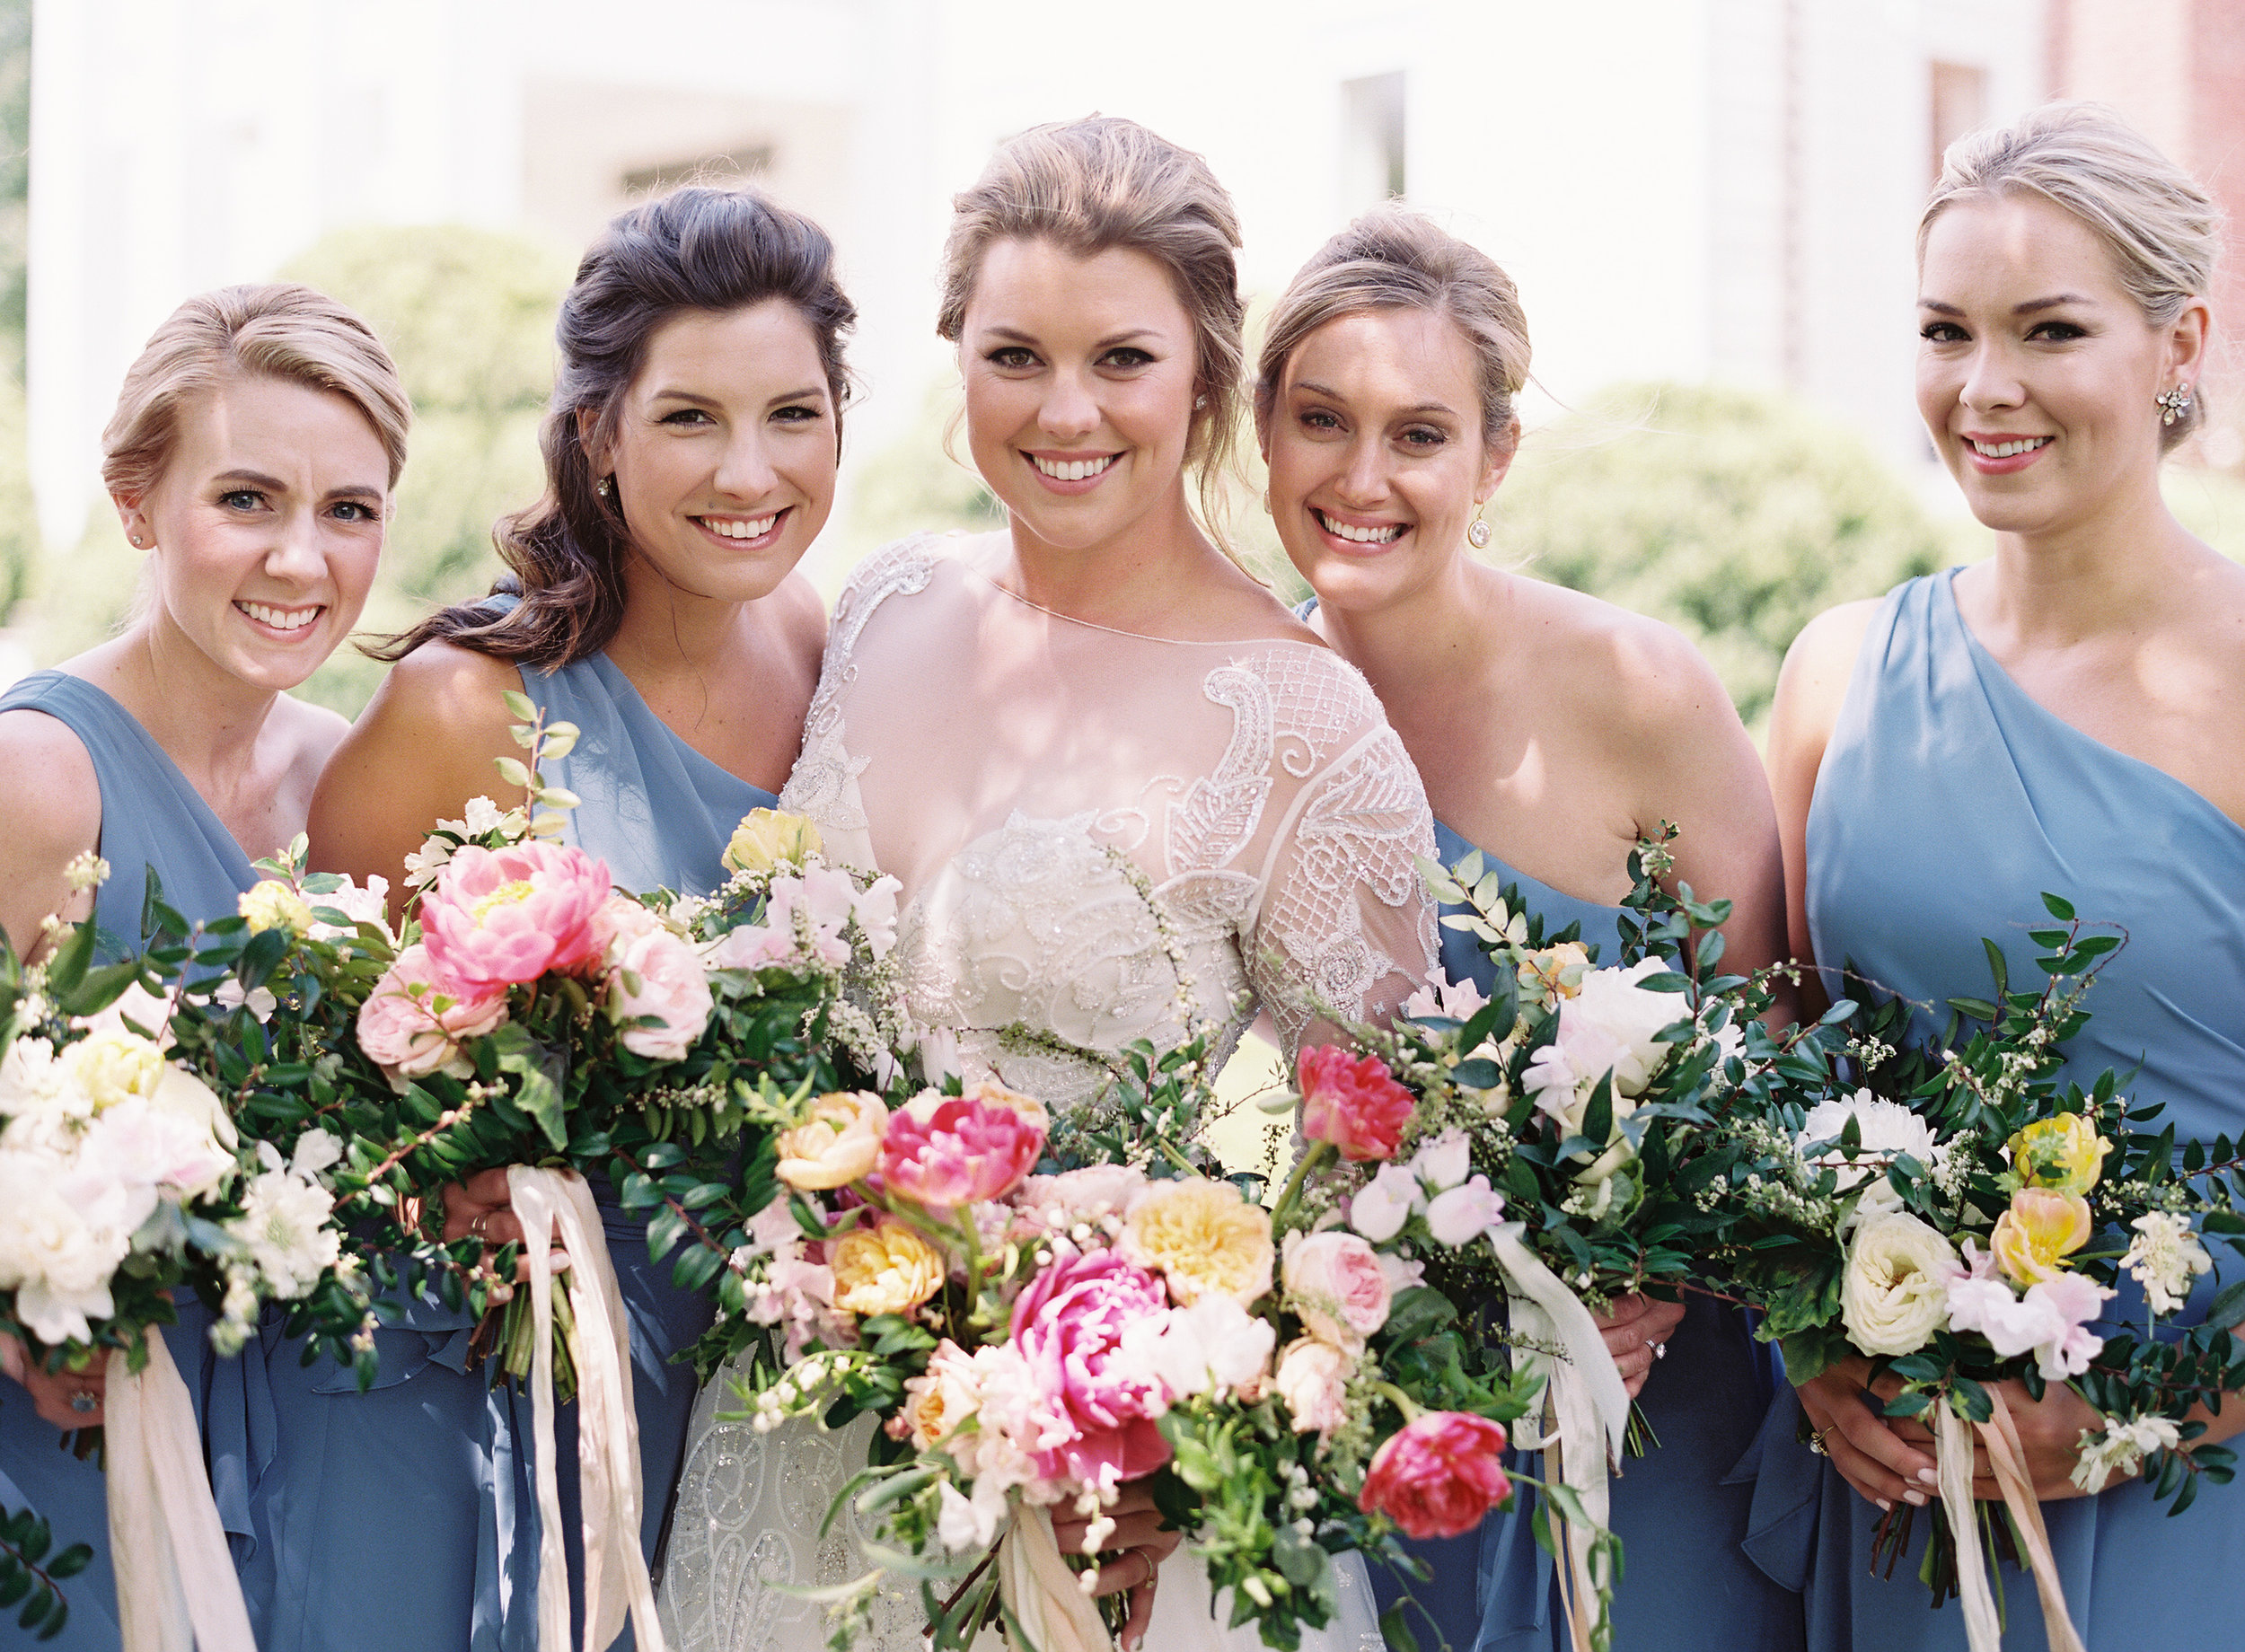 Lush bridal bouquet of peonies, tulips, lily of the valley, garden roses, and sweet peas  // Nashville Wedding Floral Design